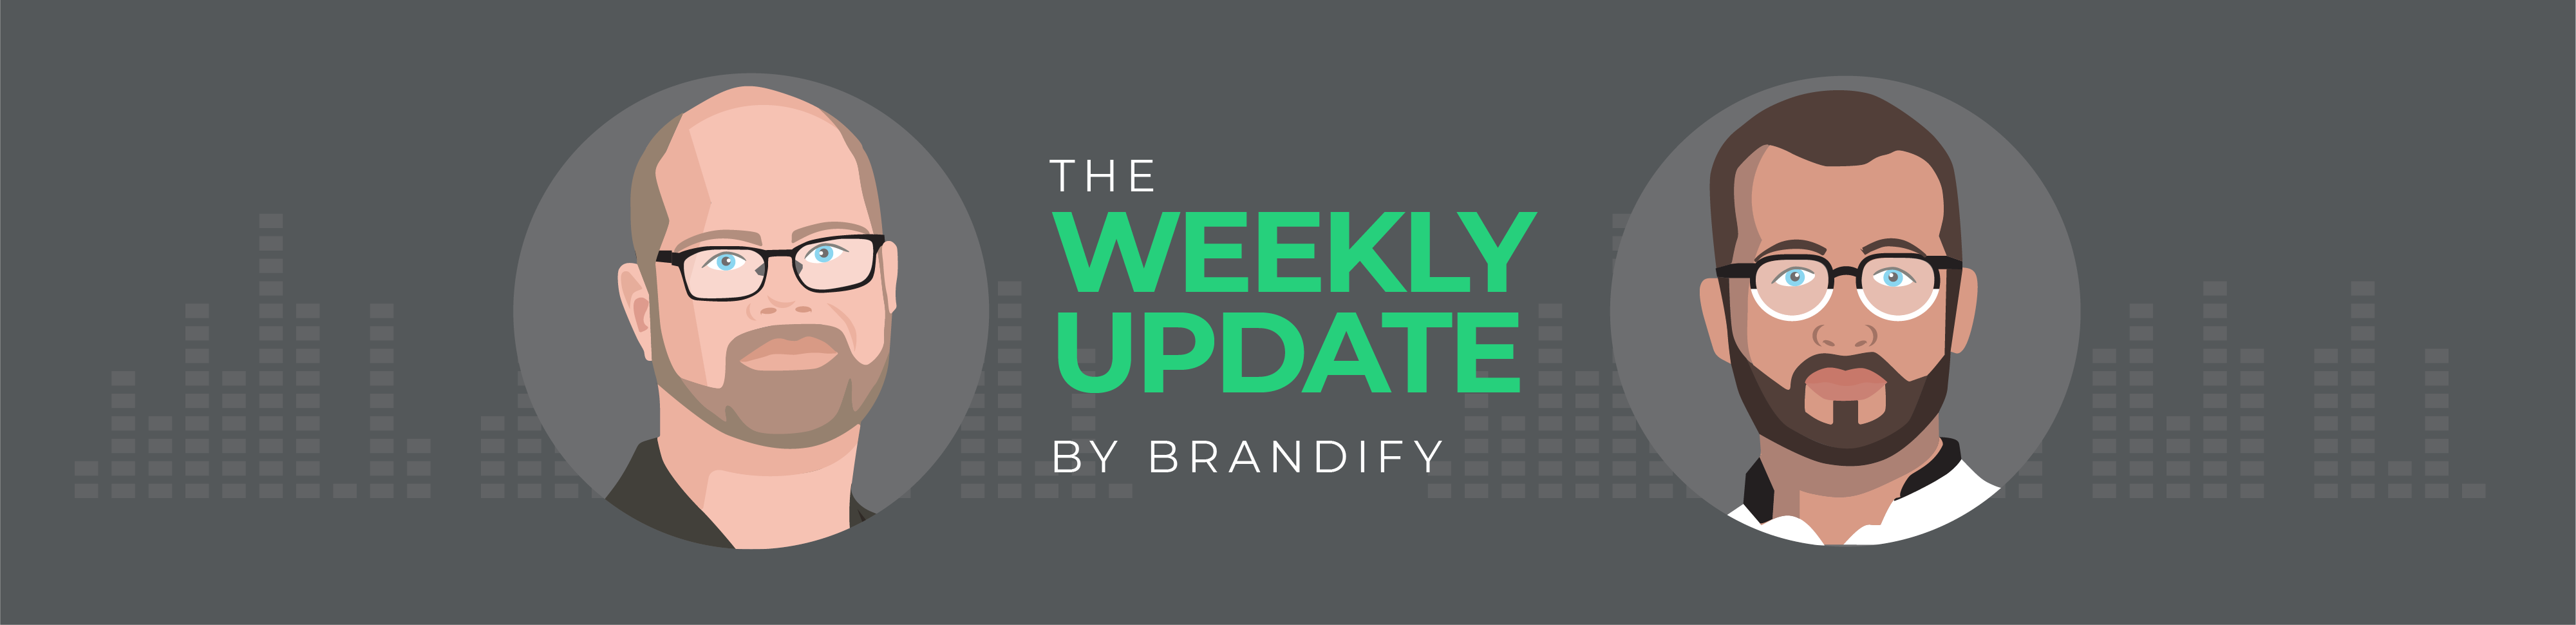 Brandify's The Weekly Update